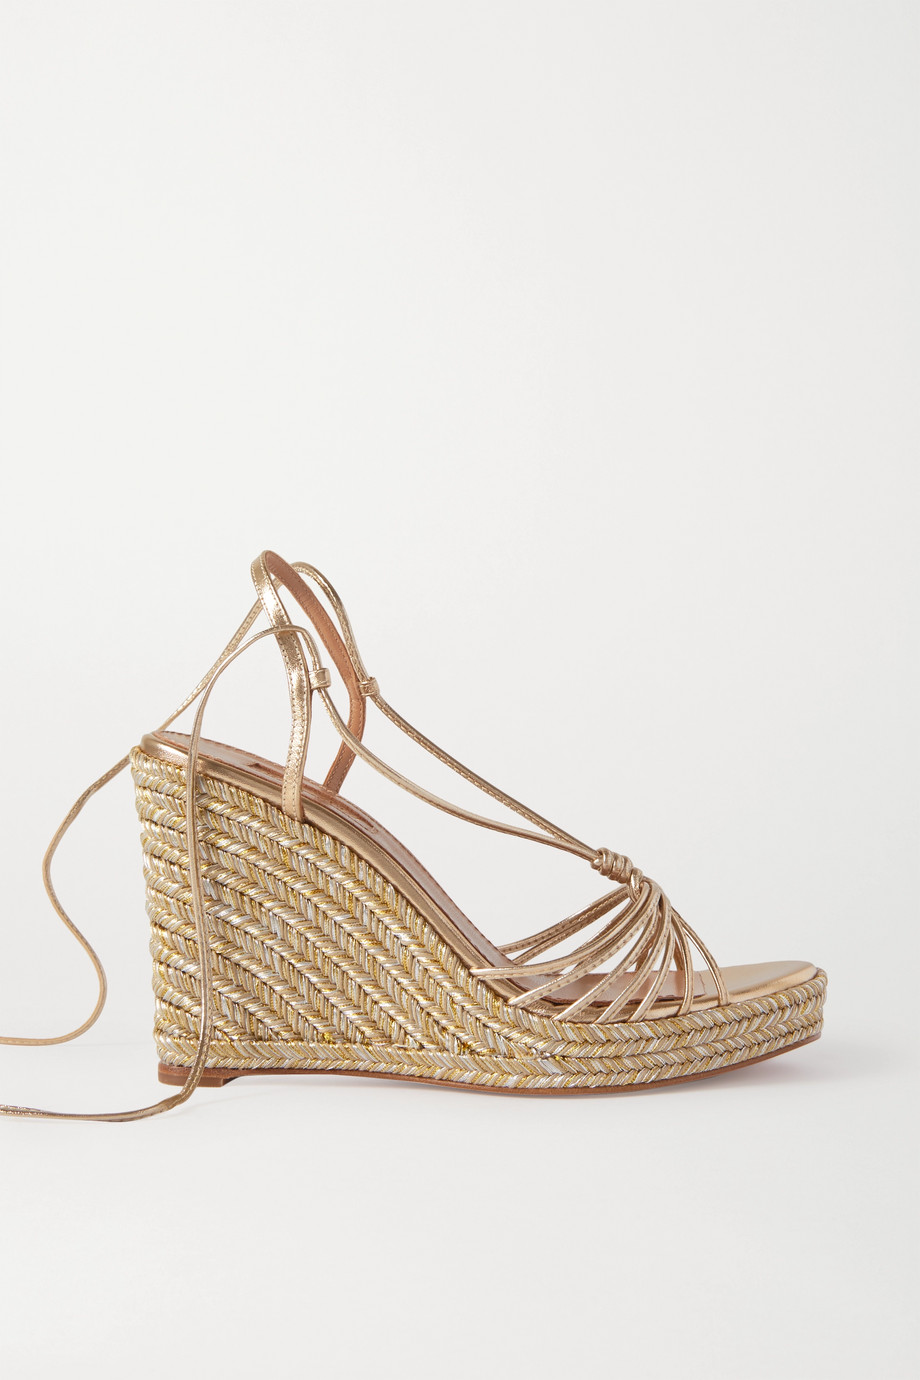 Aquazzura Whisper 85 metallic leather espadrille wedge sandals